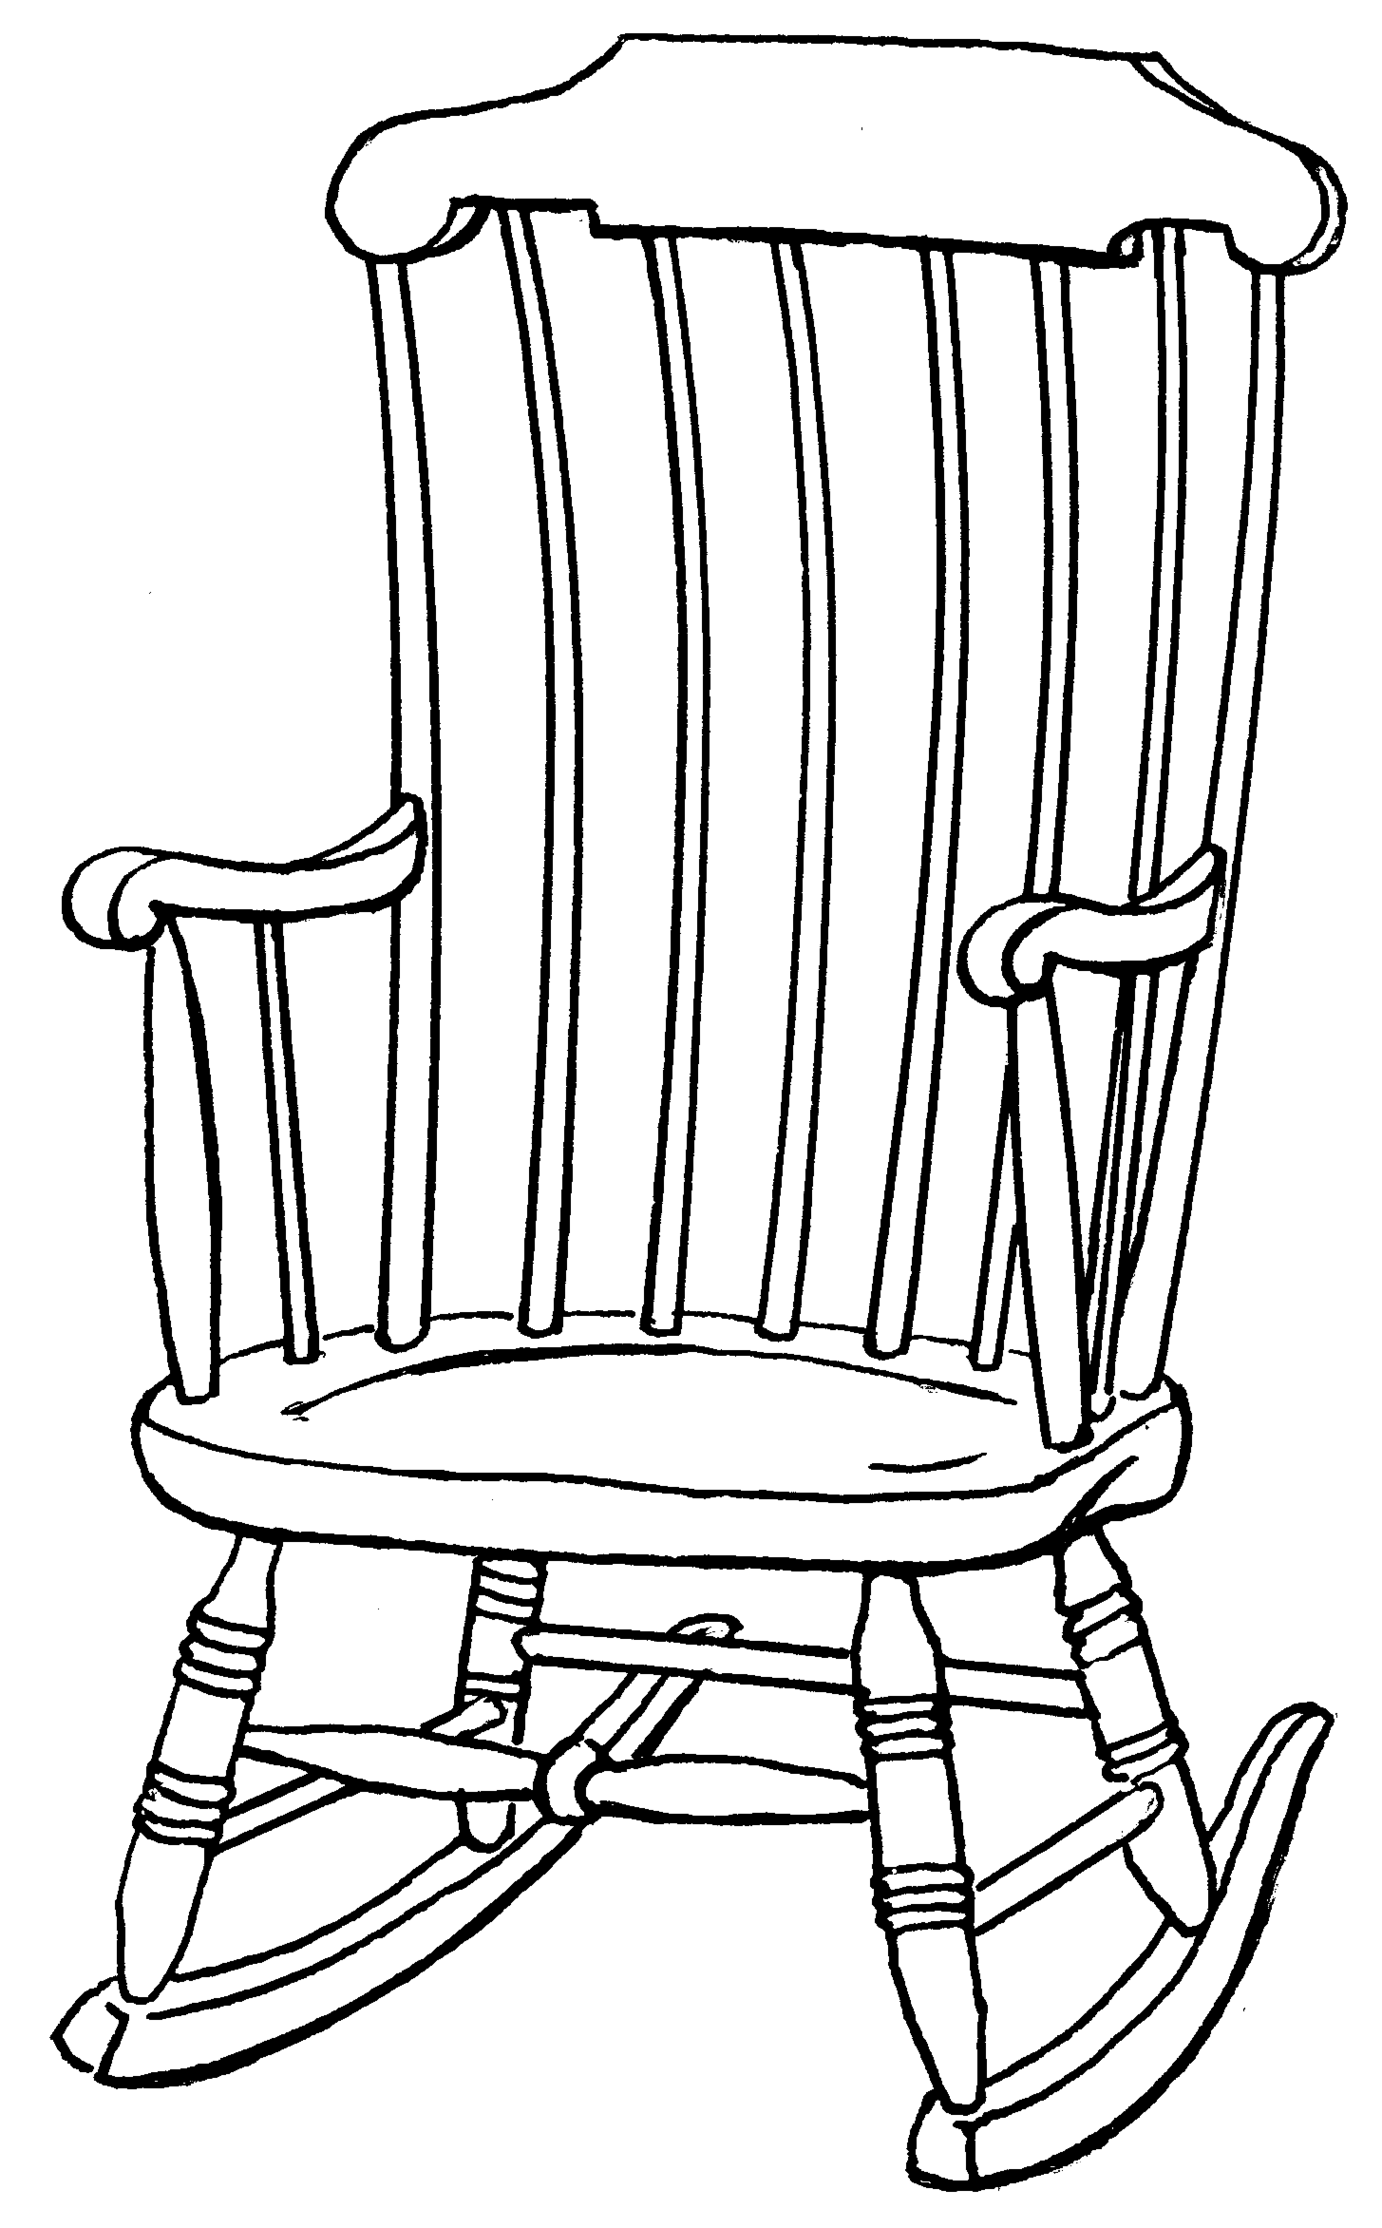 Scribbles Drawing And Coloring Book : Chair outline clipart best